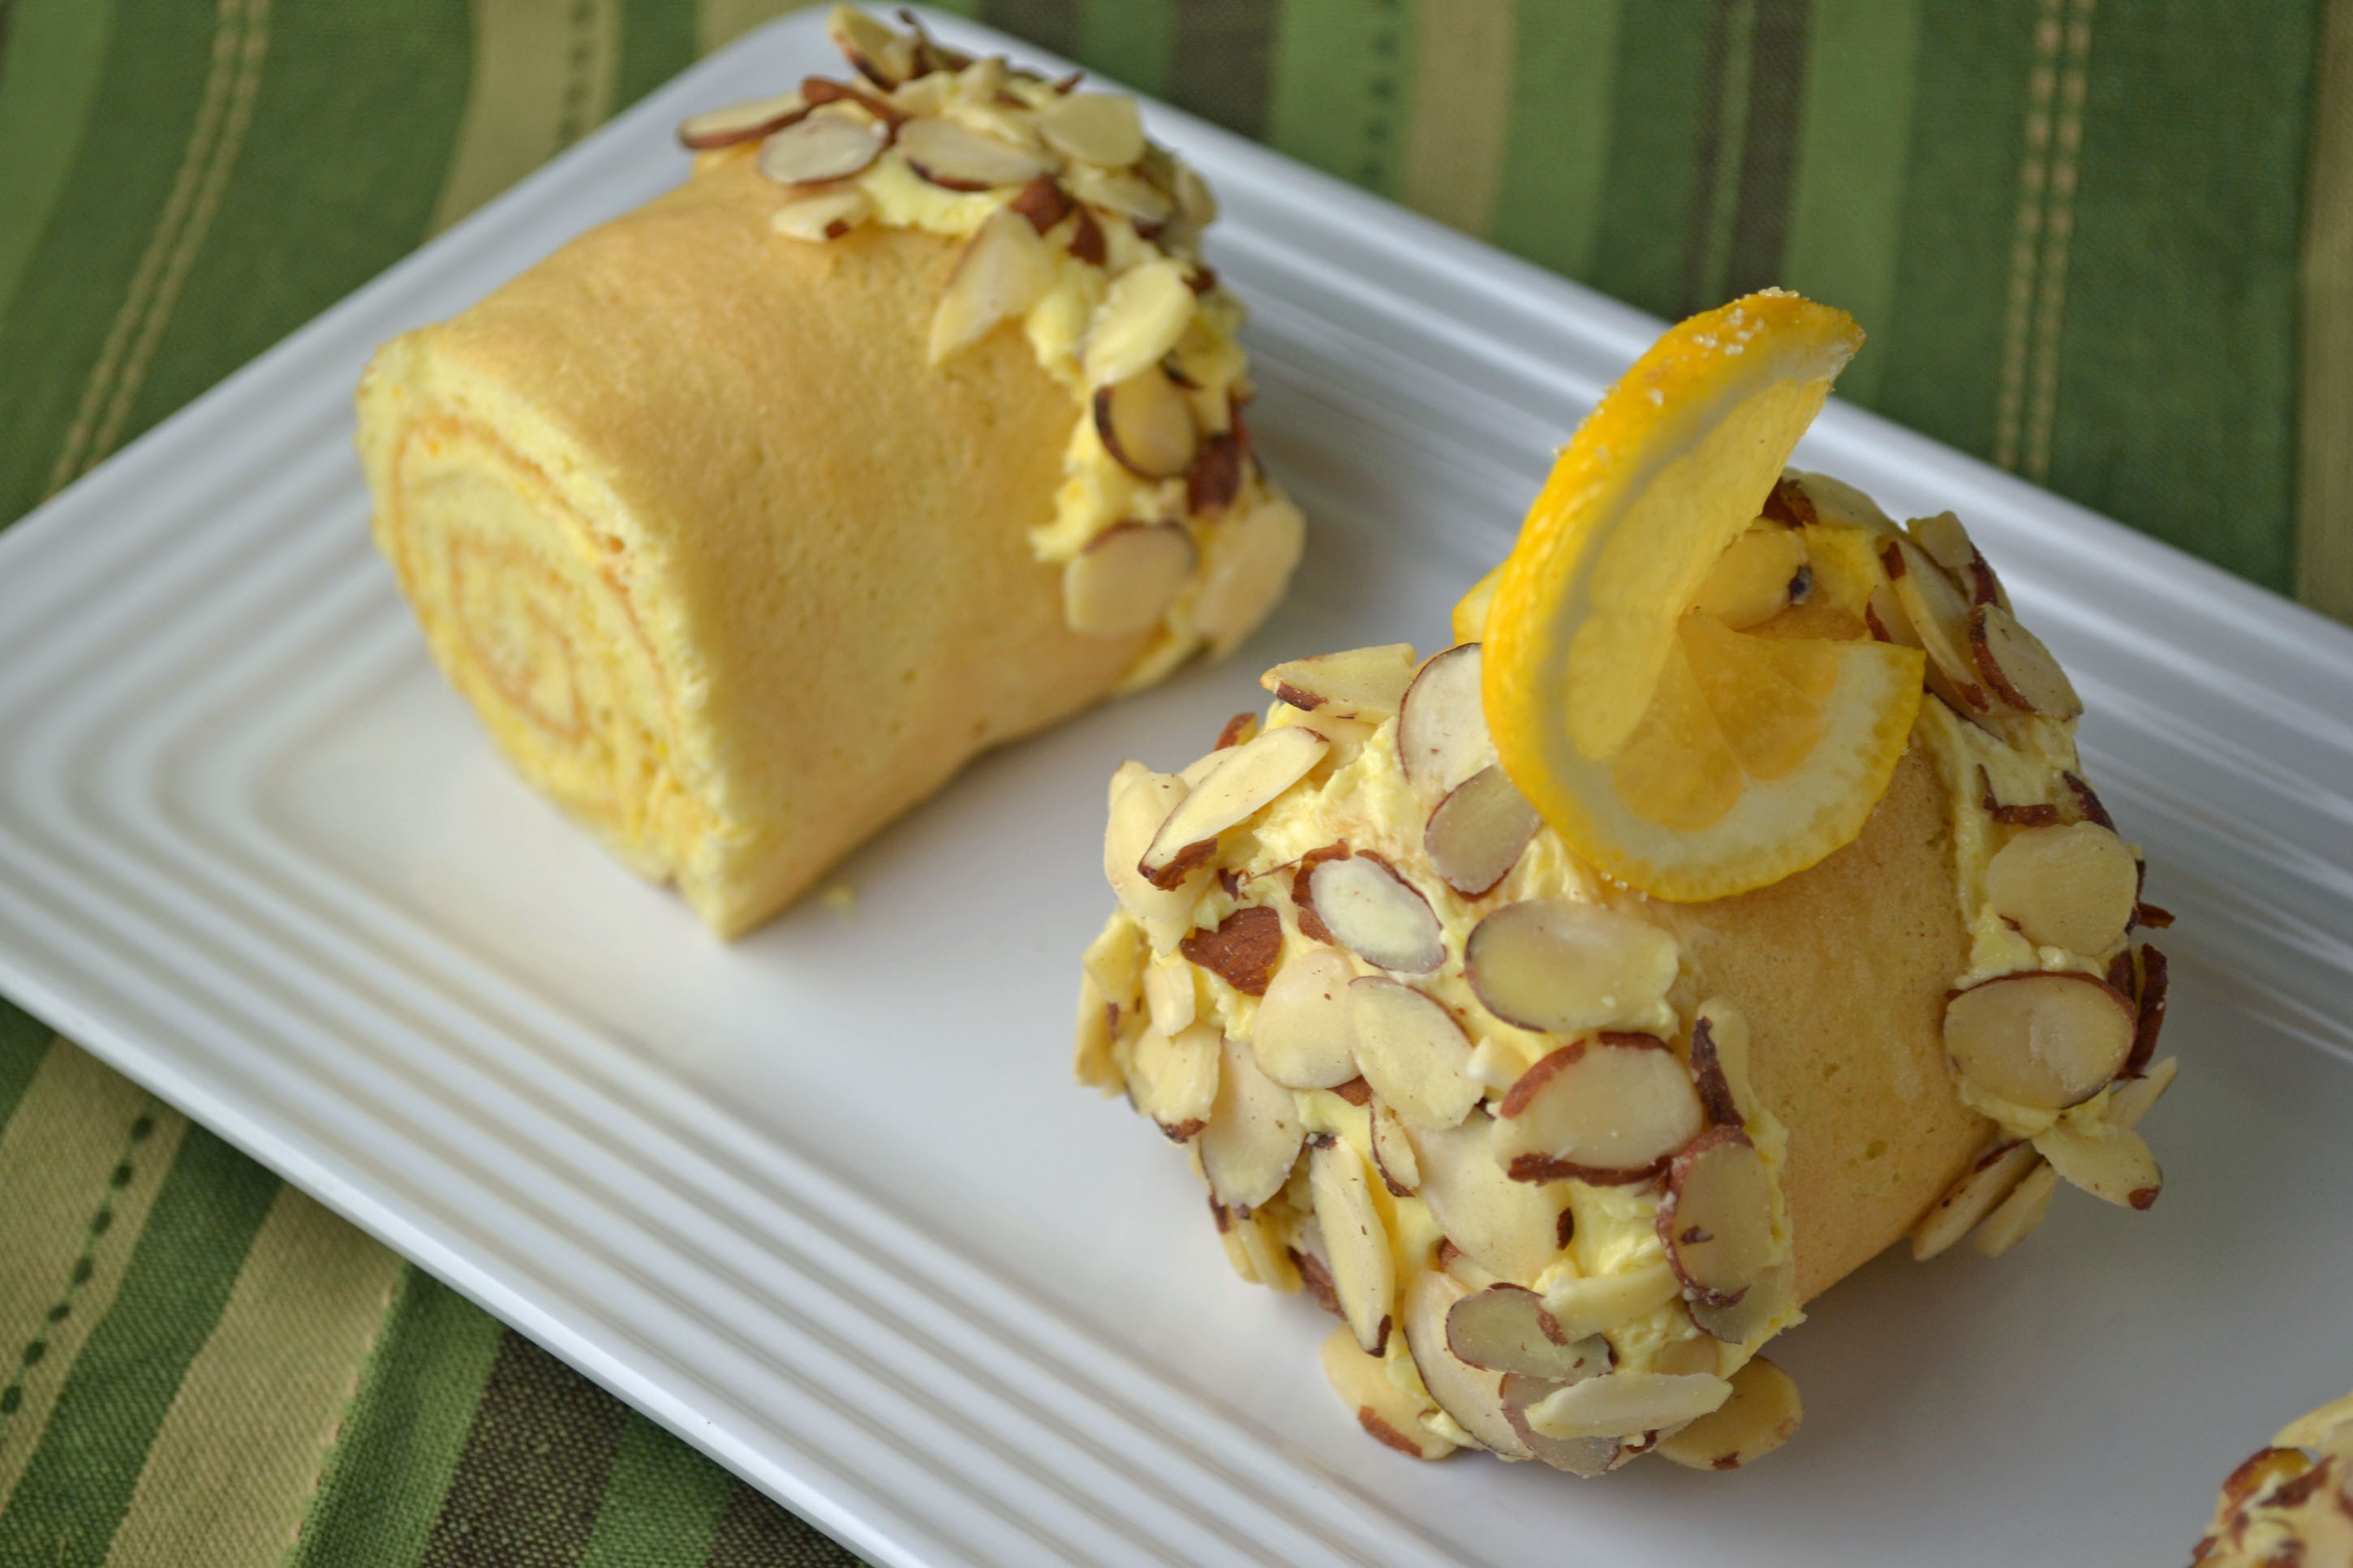 Lemon Cake Logs by Paula Peck